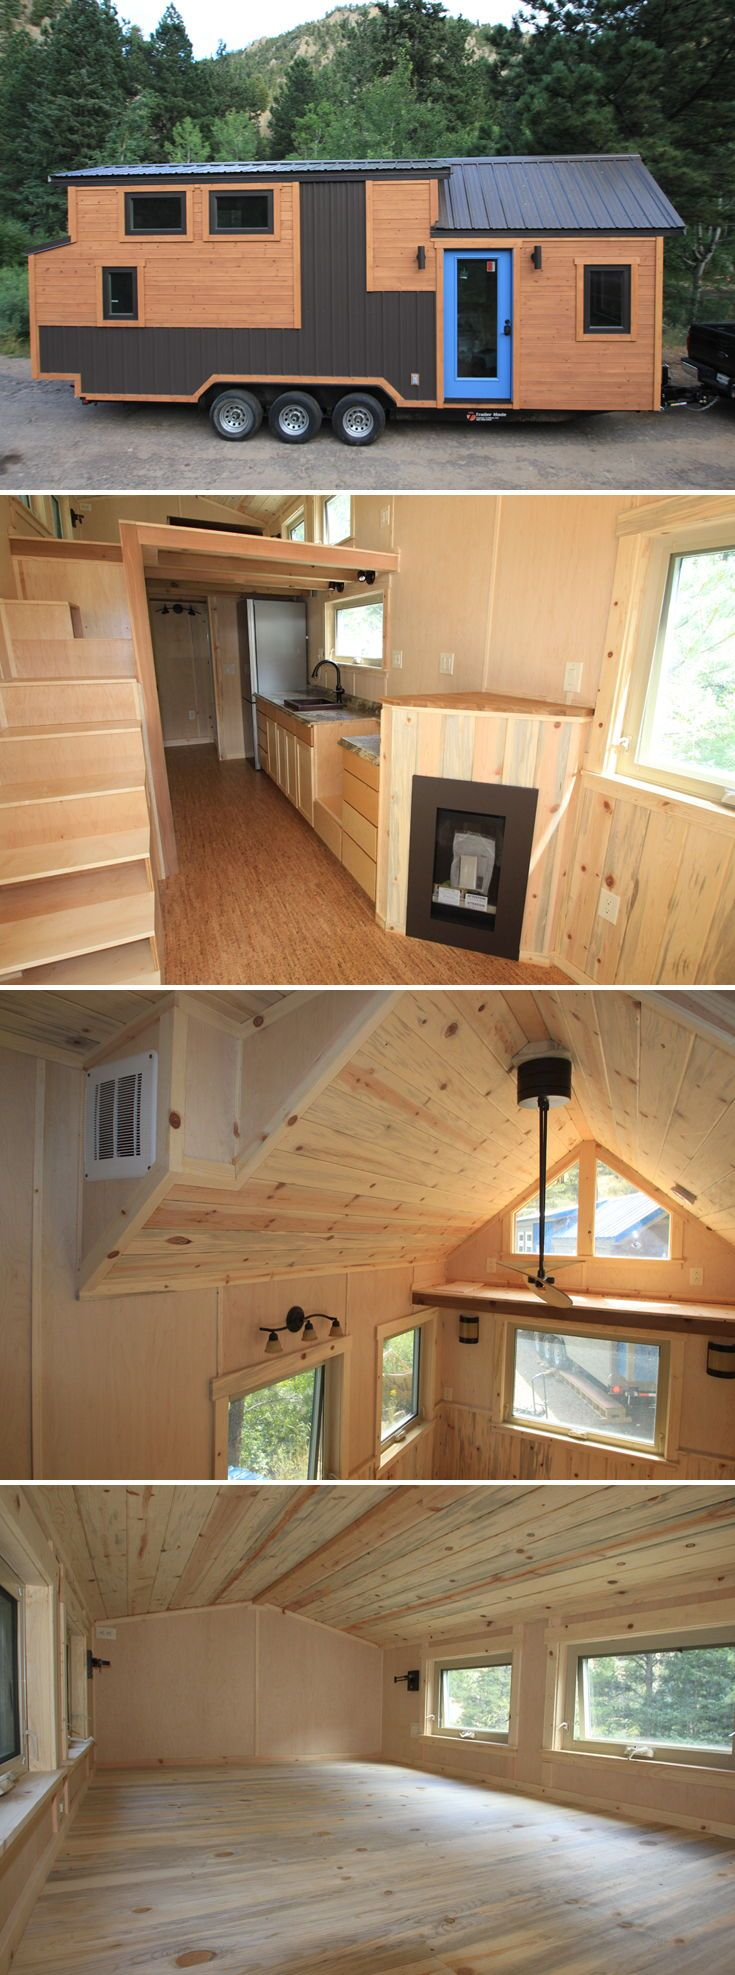 Medium Of Monarch Tiny Homes